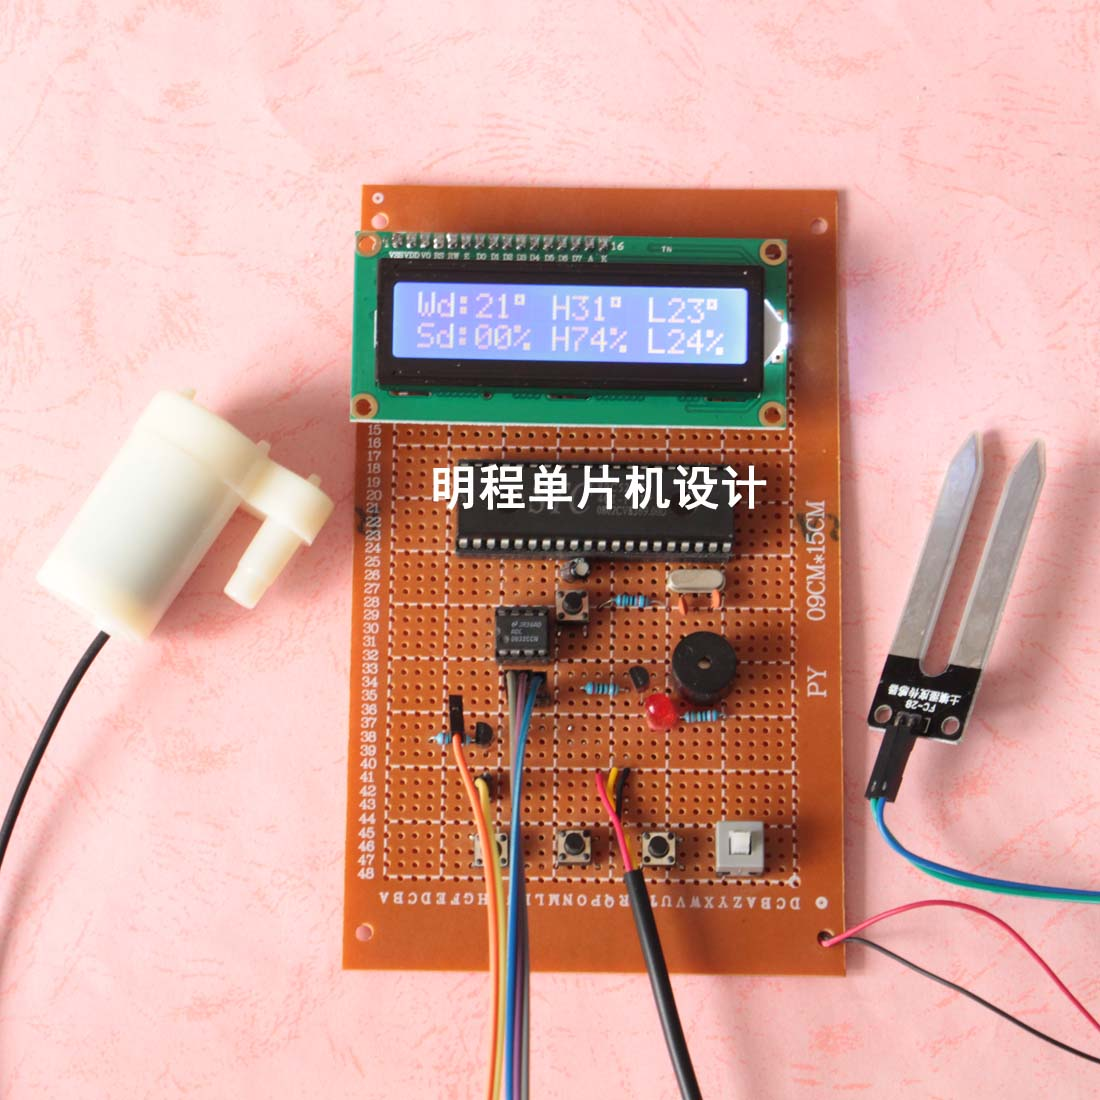 51 single-chip microcomputer soil temperature and humidity detection alarm control watering design intelligent watering system course parts